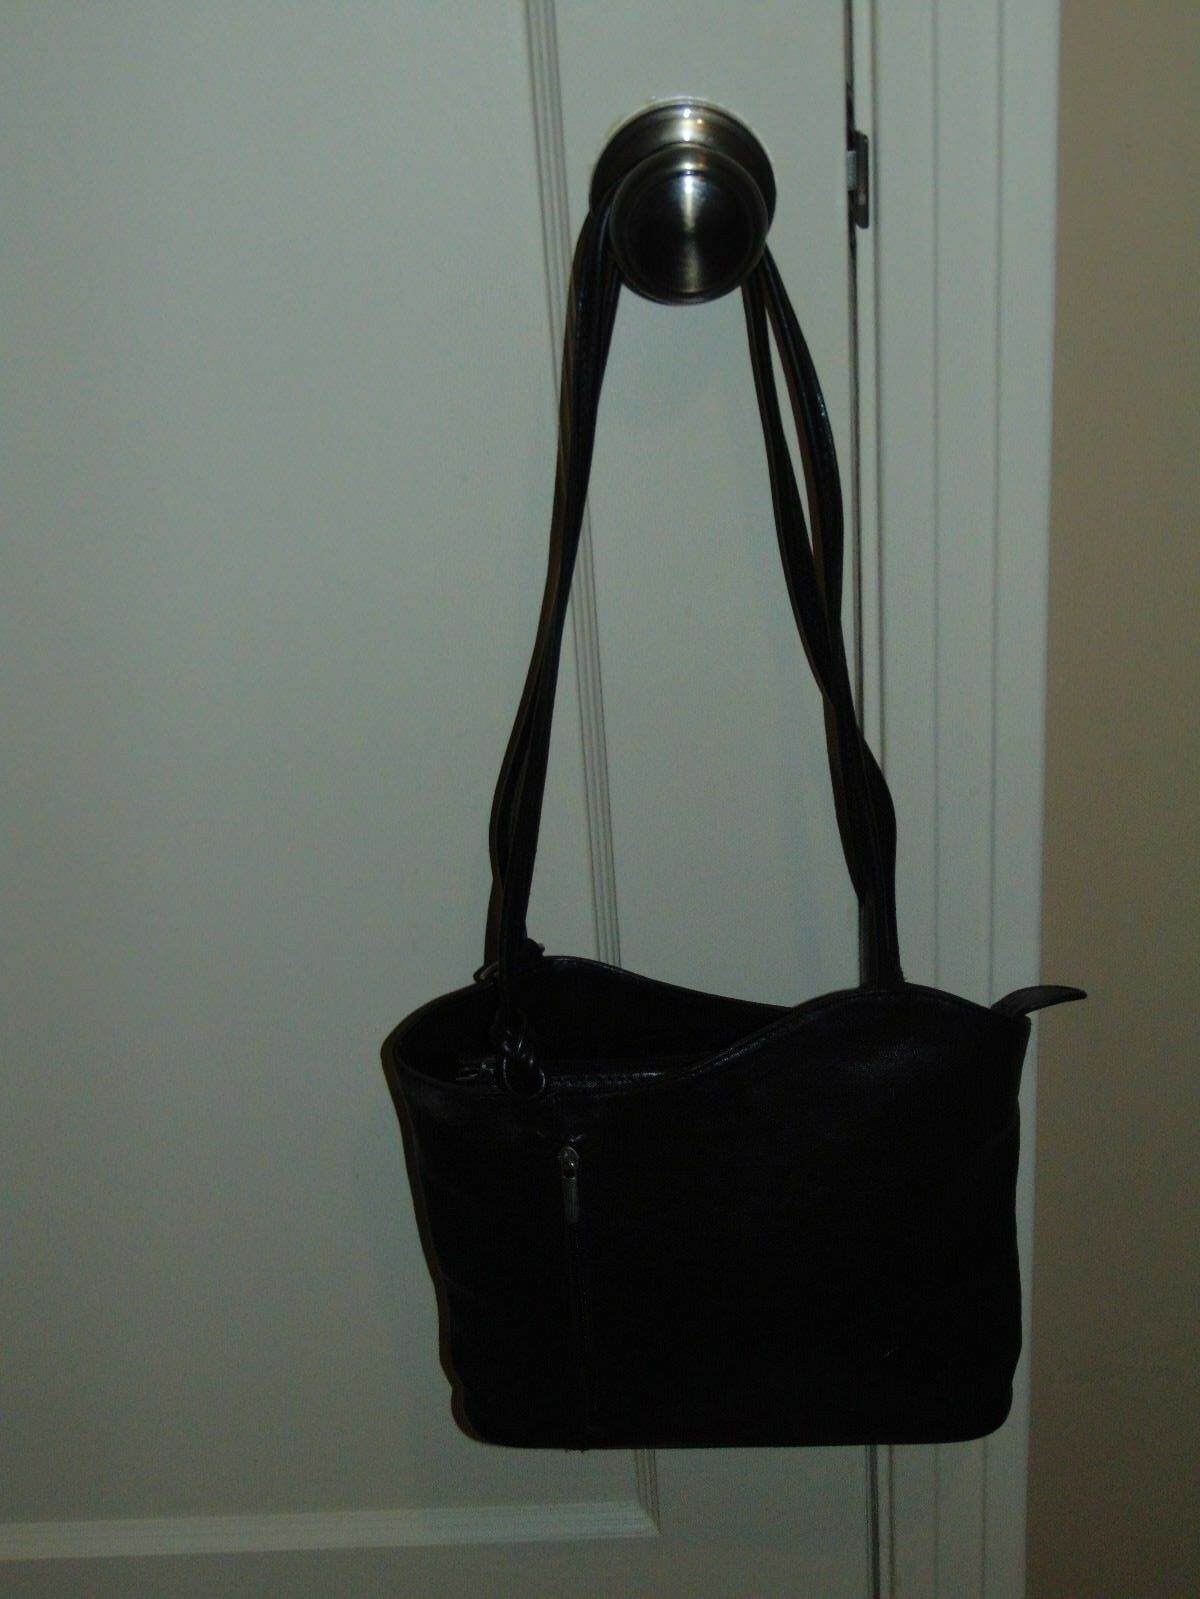 THE LEATHER BLACK LEATHER PURSE BACKPACK - MADE AND PURCHASED IN ITALY